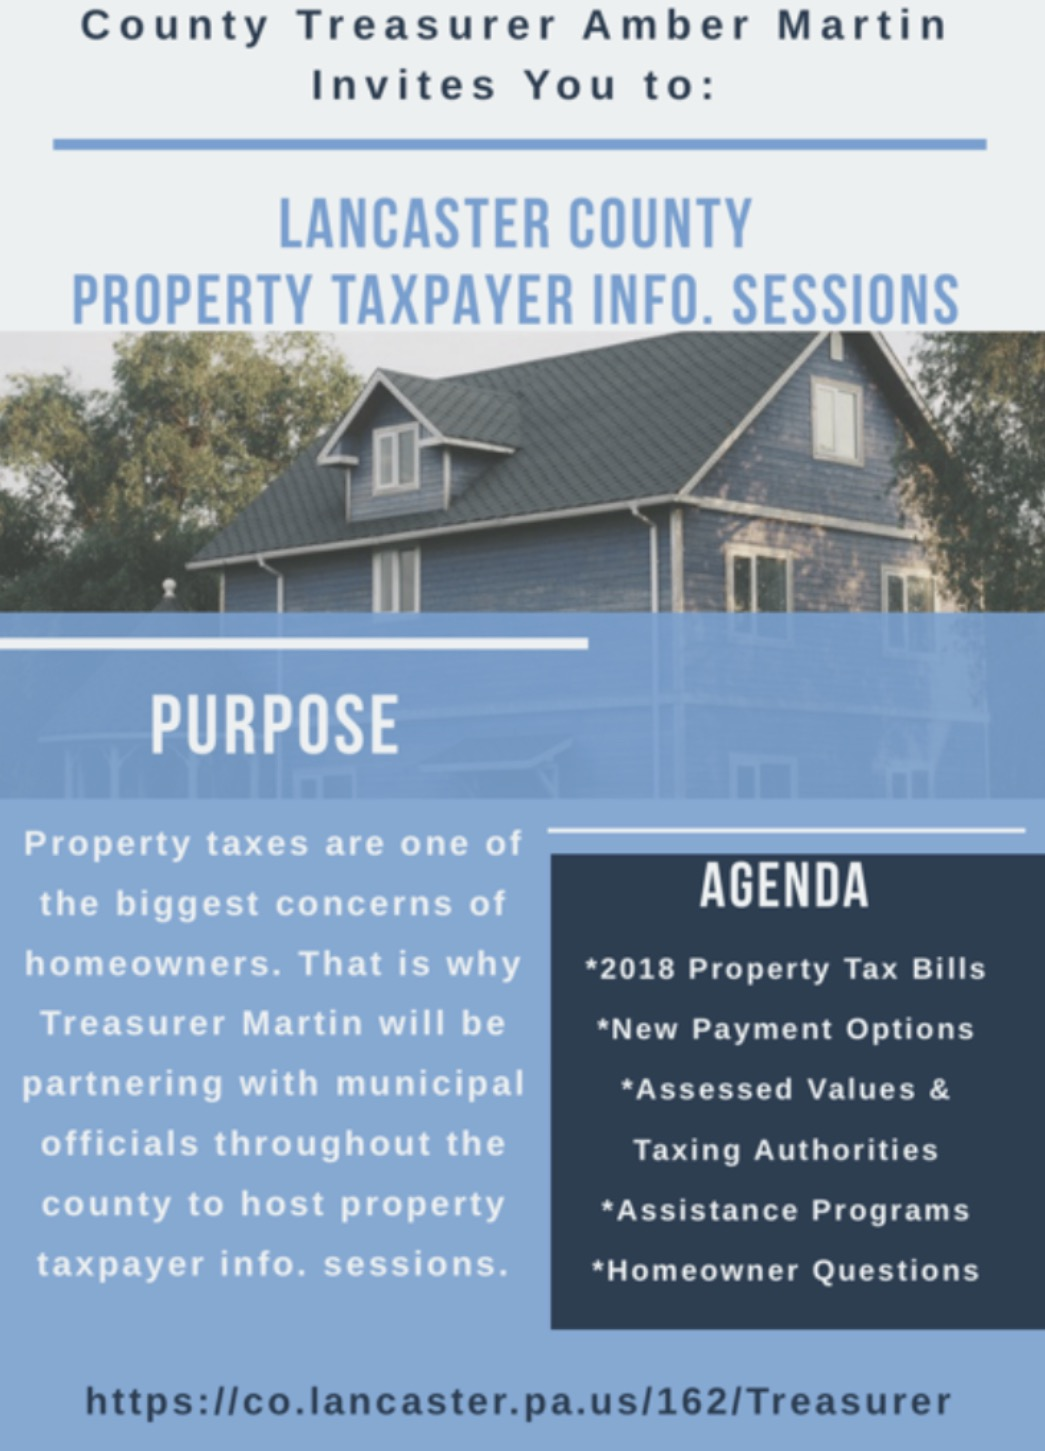 2018 Property Tax Payer Info Sessions